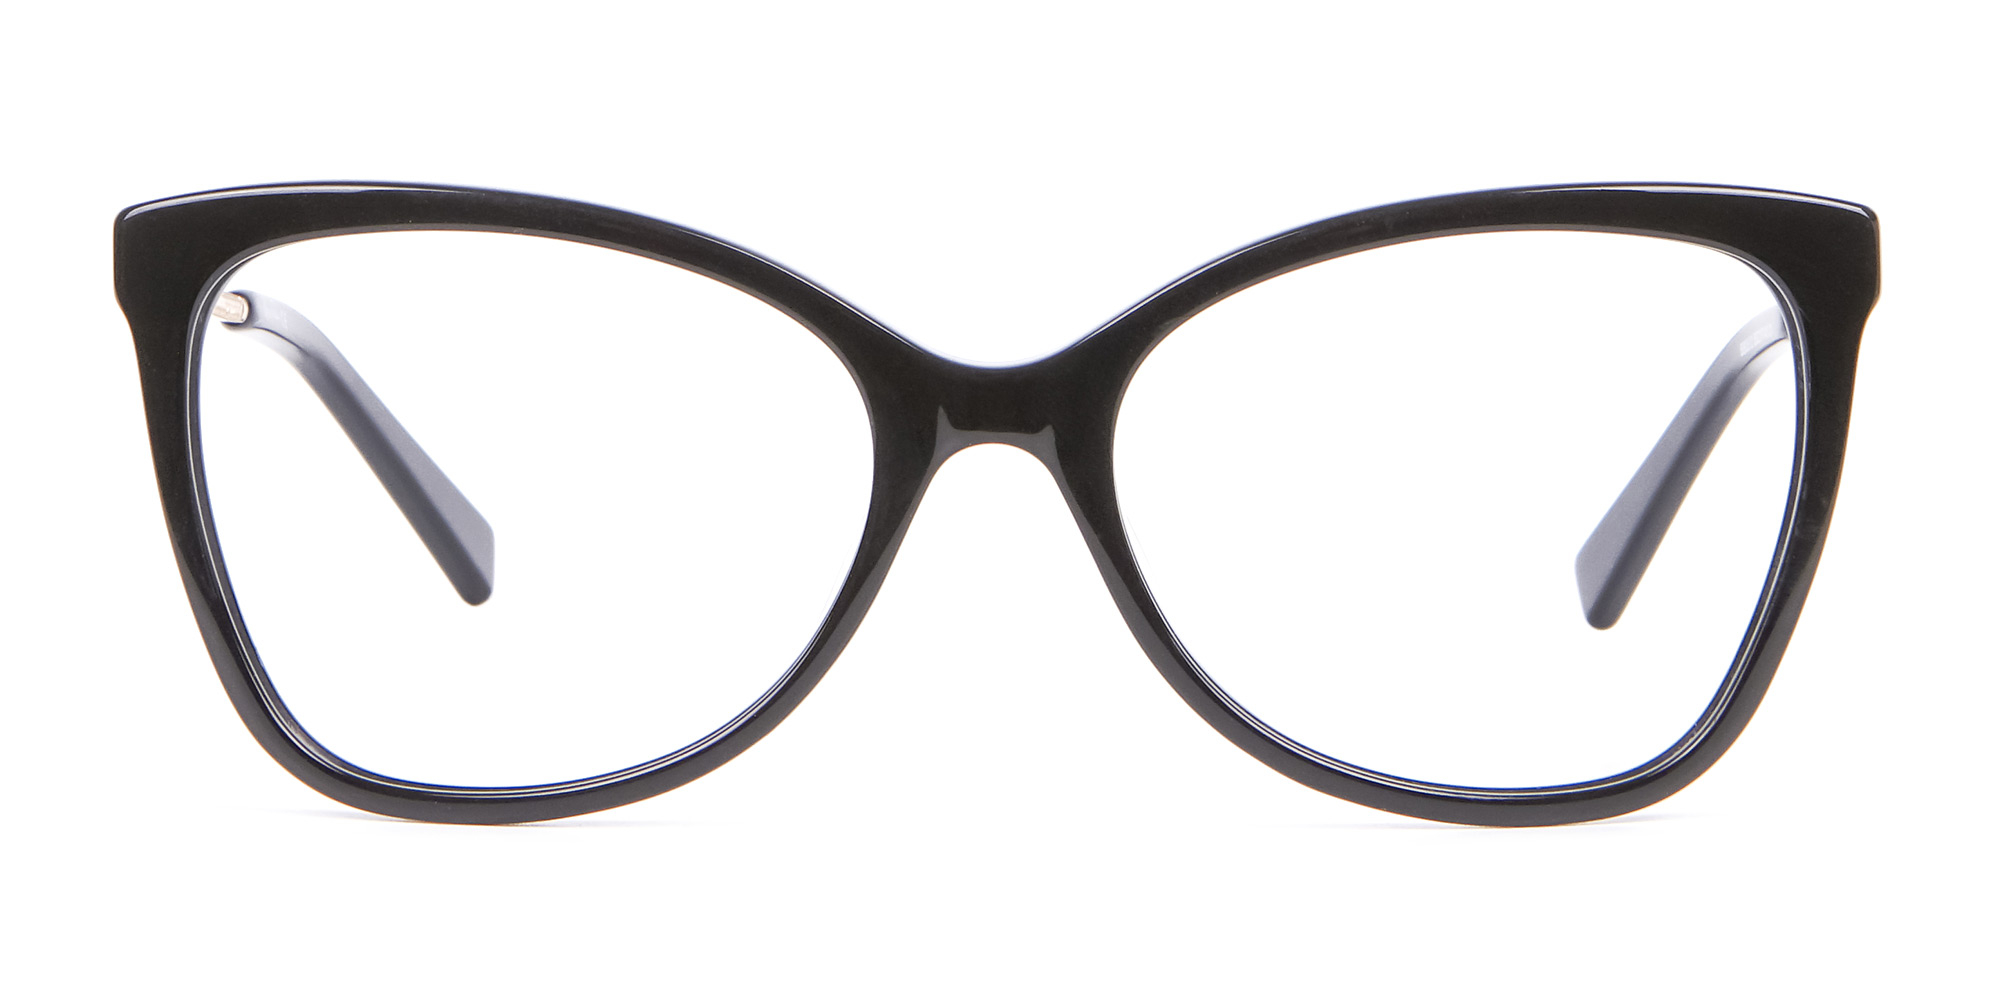 black butterfly glasses for oval face shape